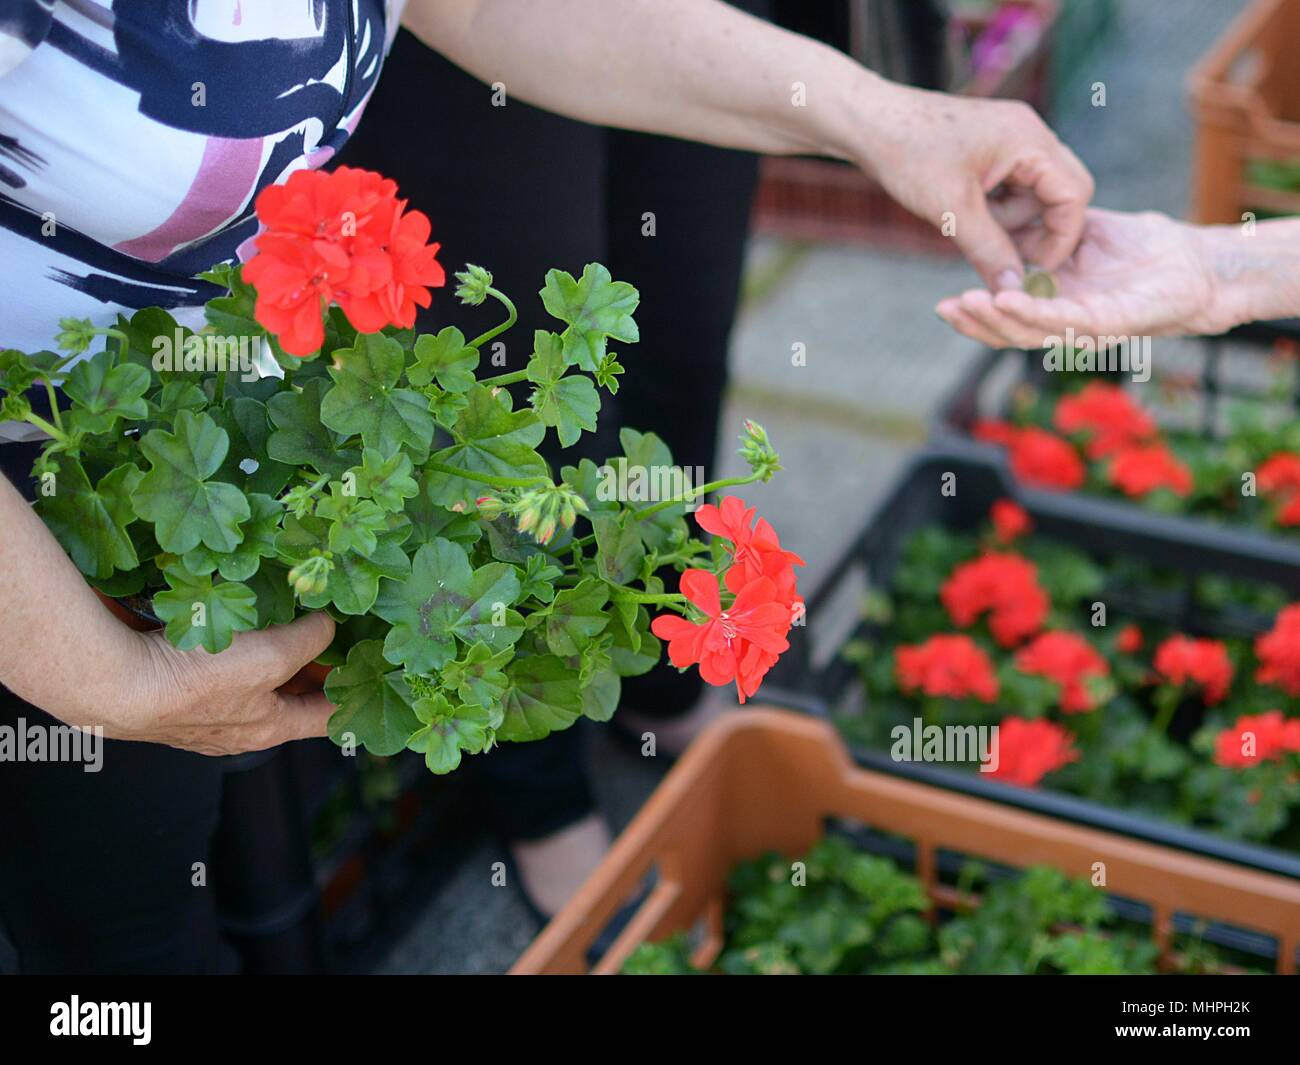 marjoram plant at the hands of a gardener - Stock Image